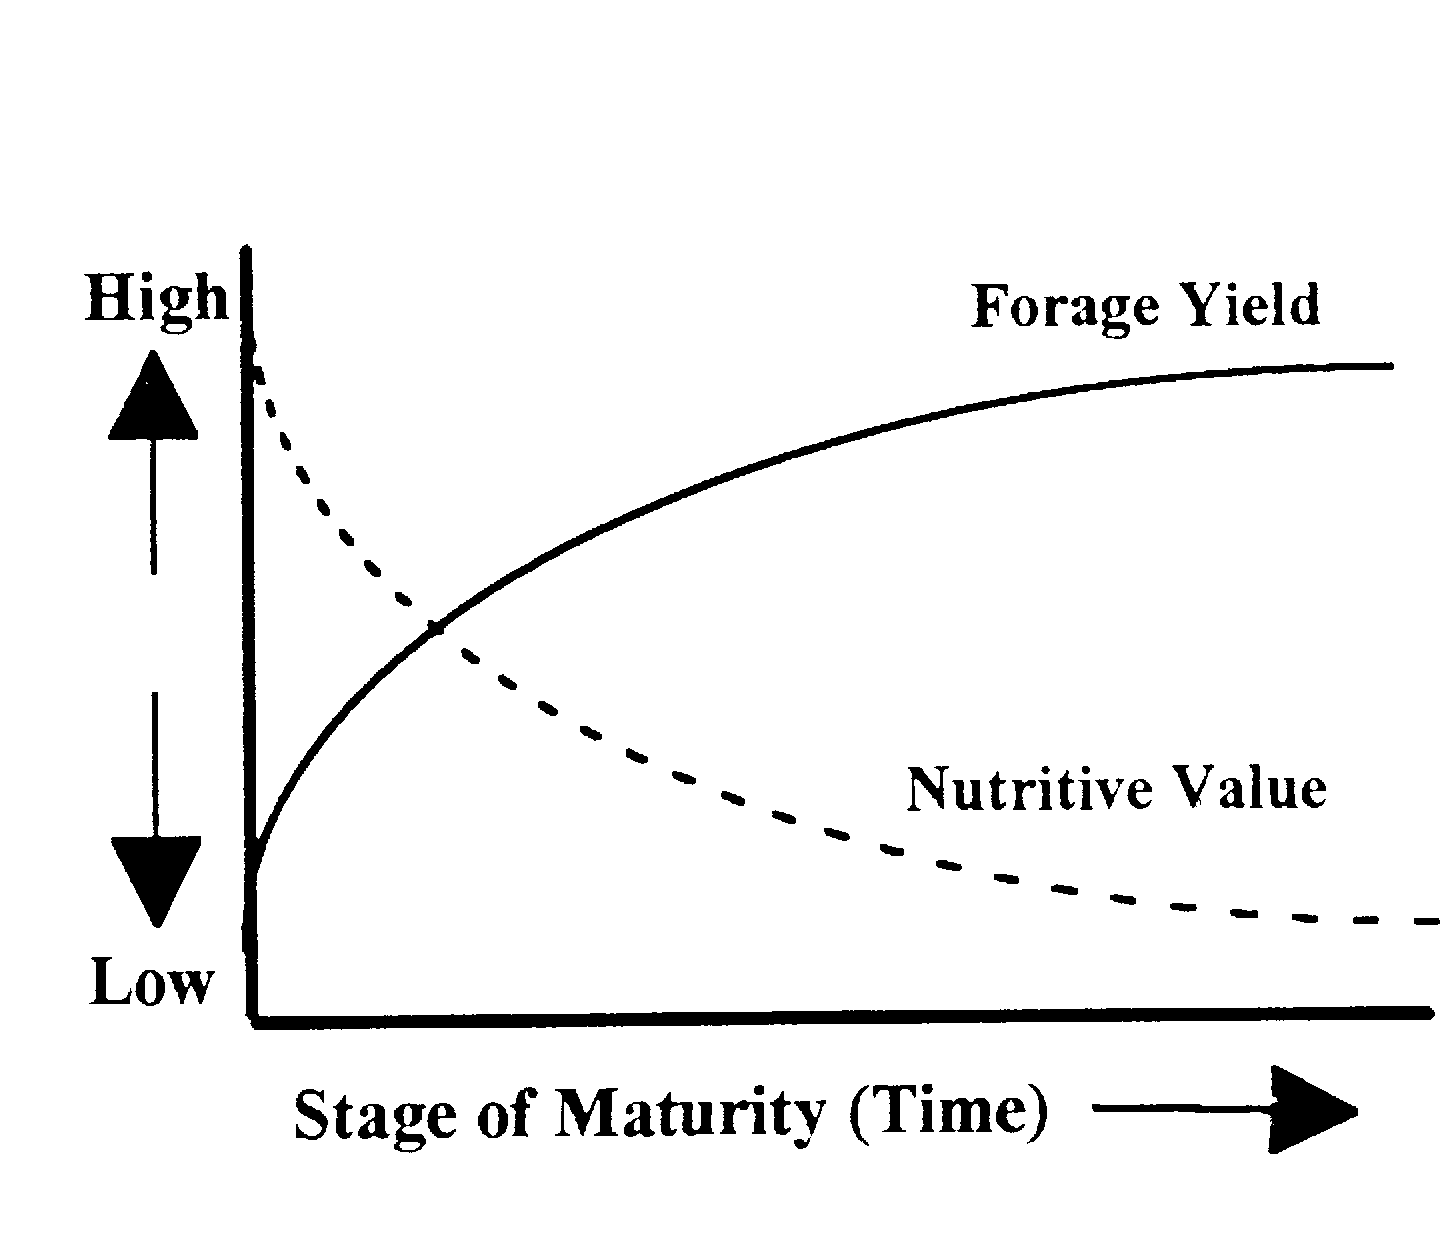 Effect of stage of maturity on forage yield and forage nutritive value.